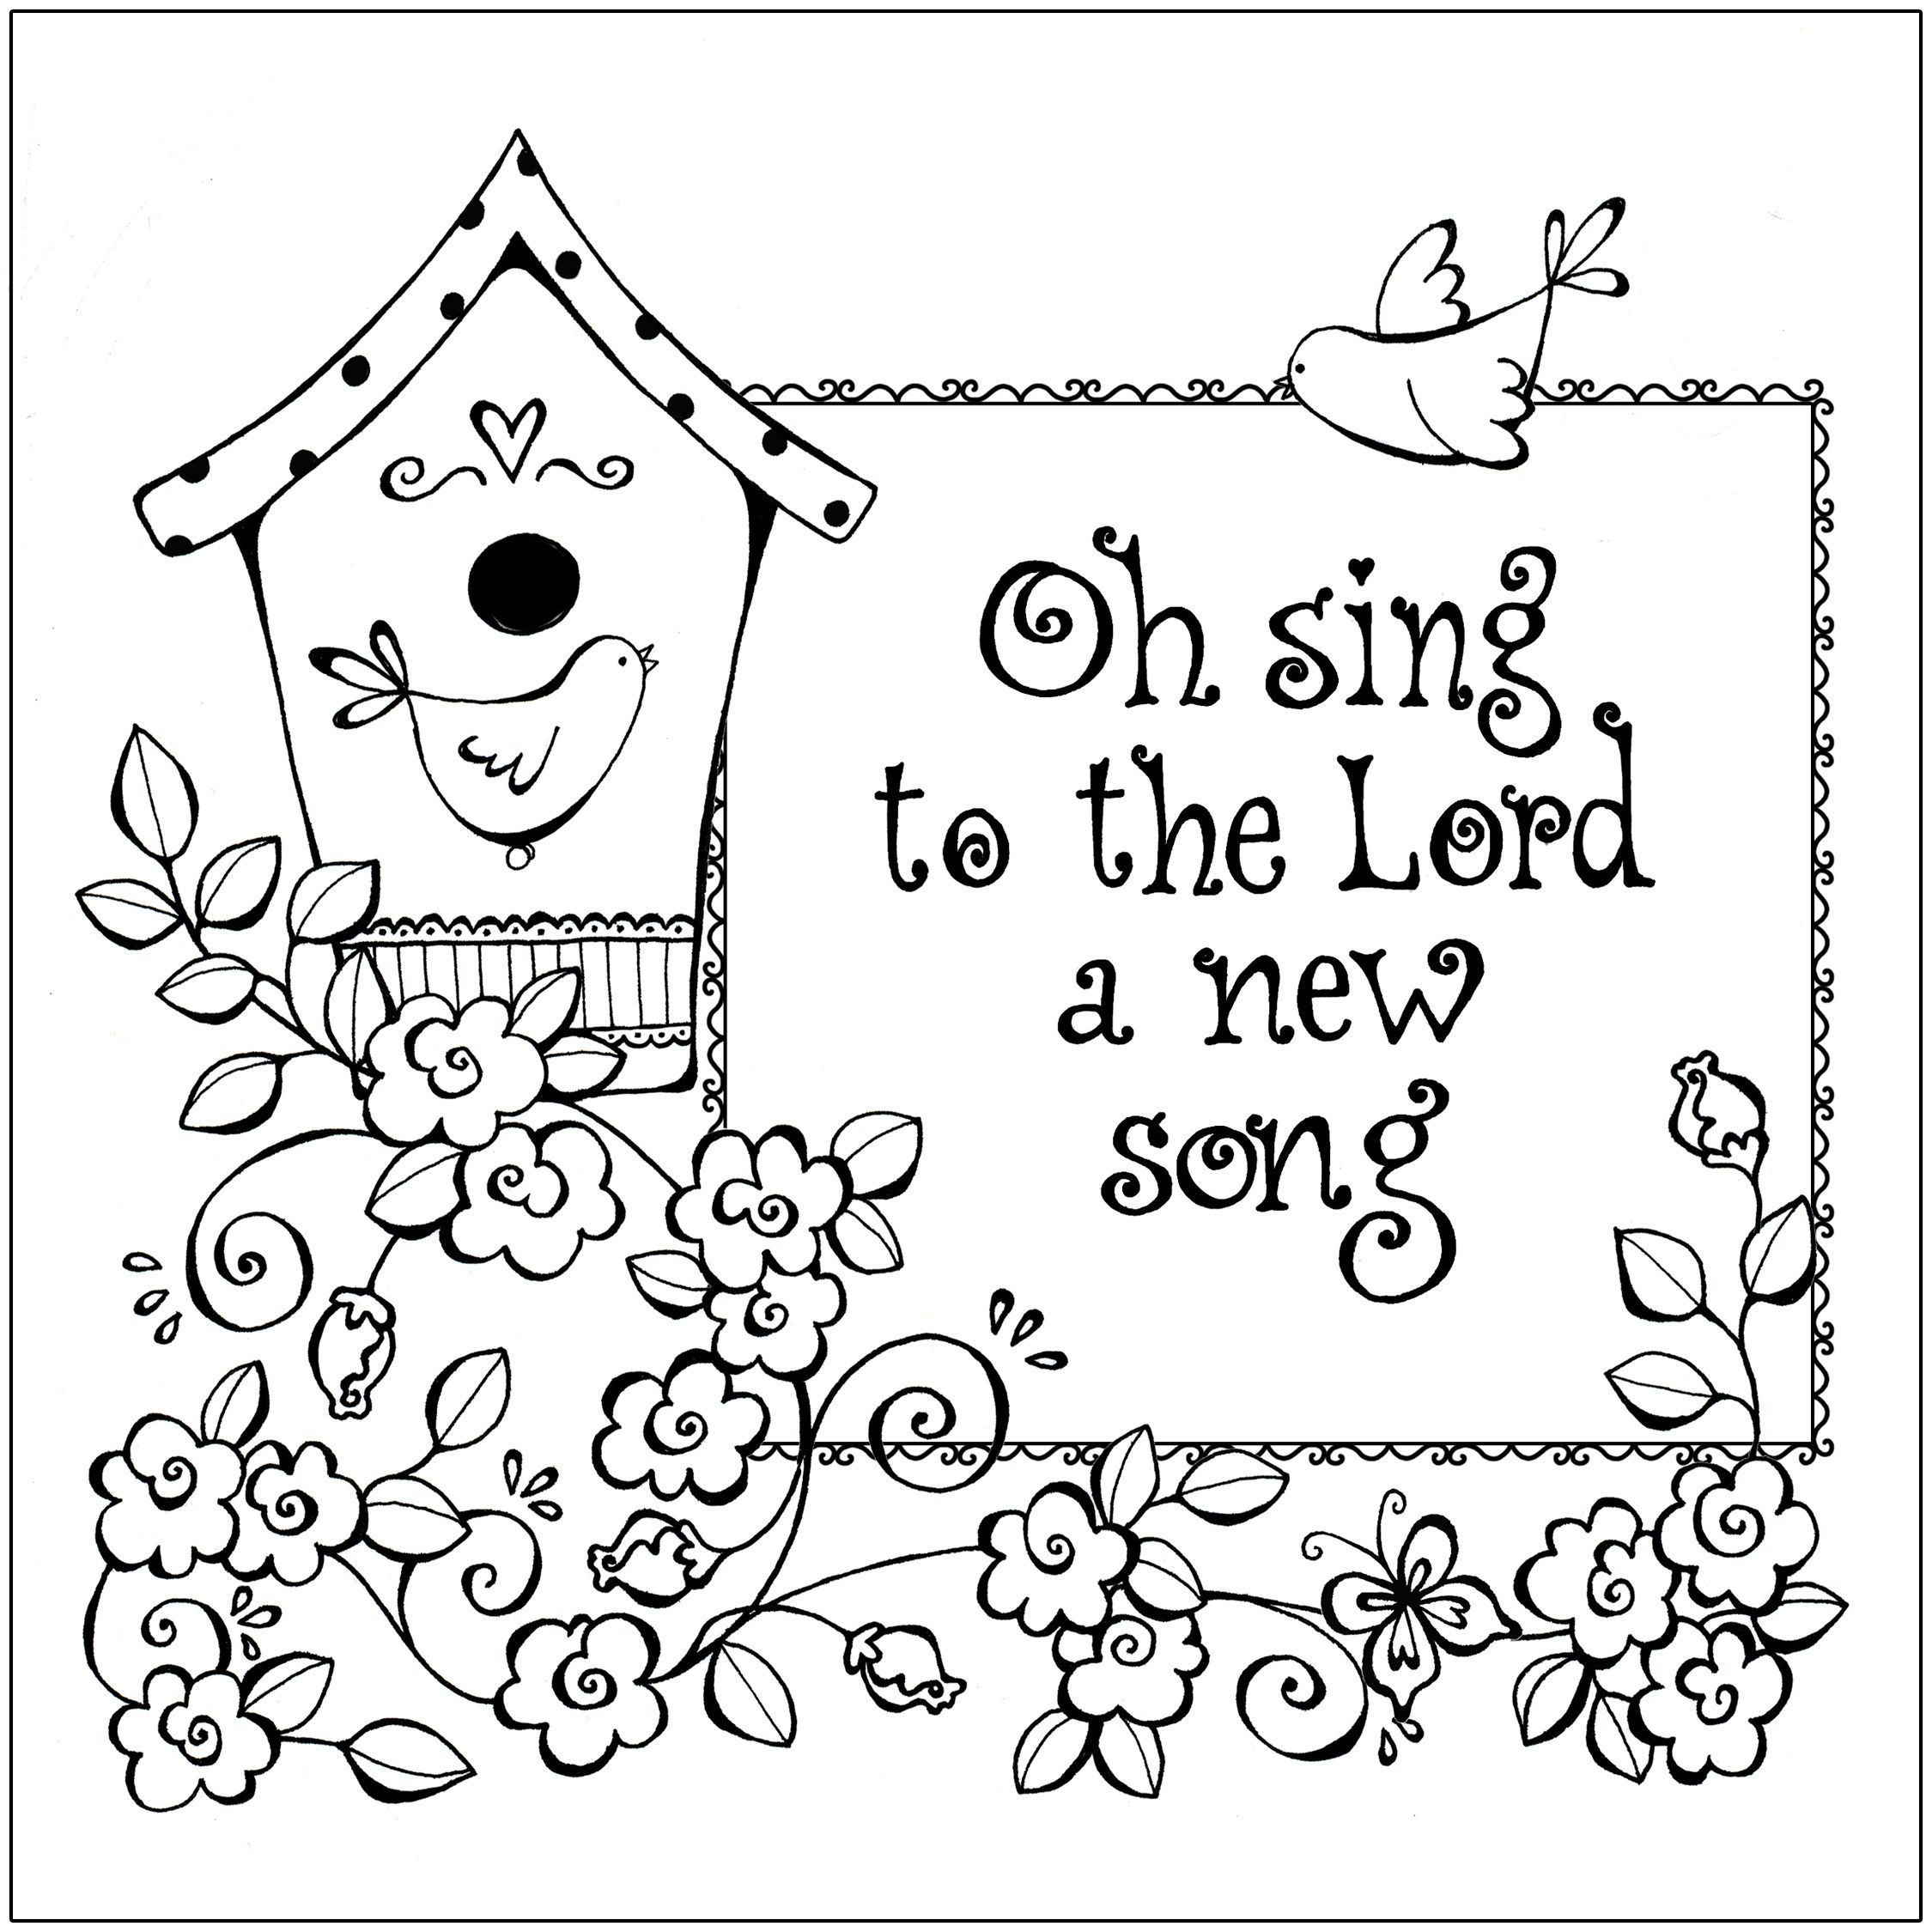 christian coloring page free sunday school coloring pages printable free bible coloring pages printable amusing free bible coloring pages for kids